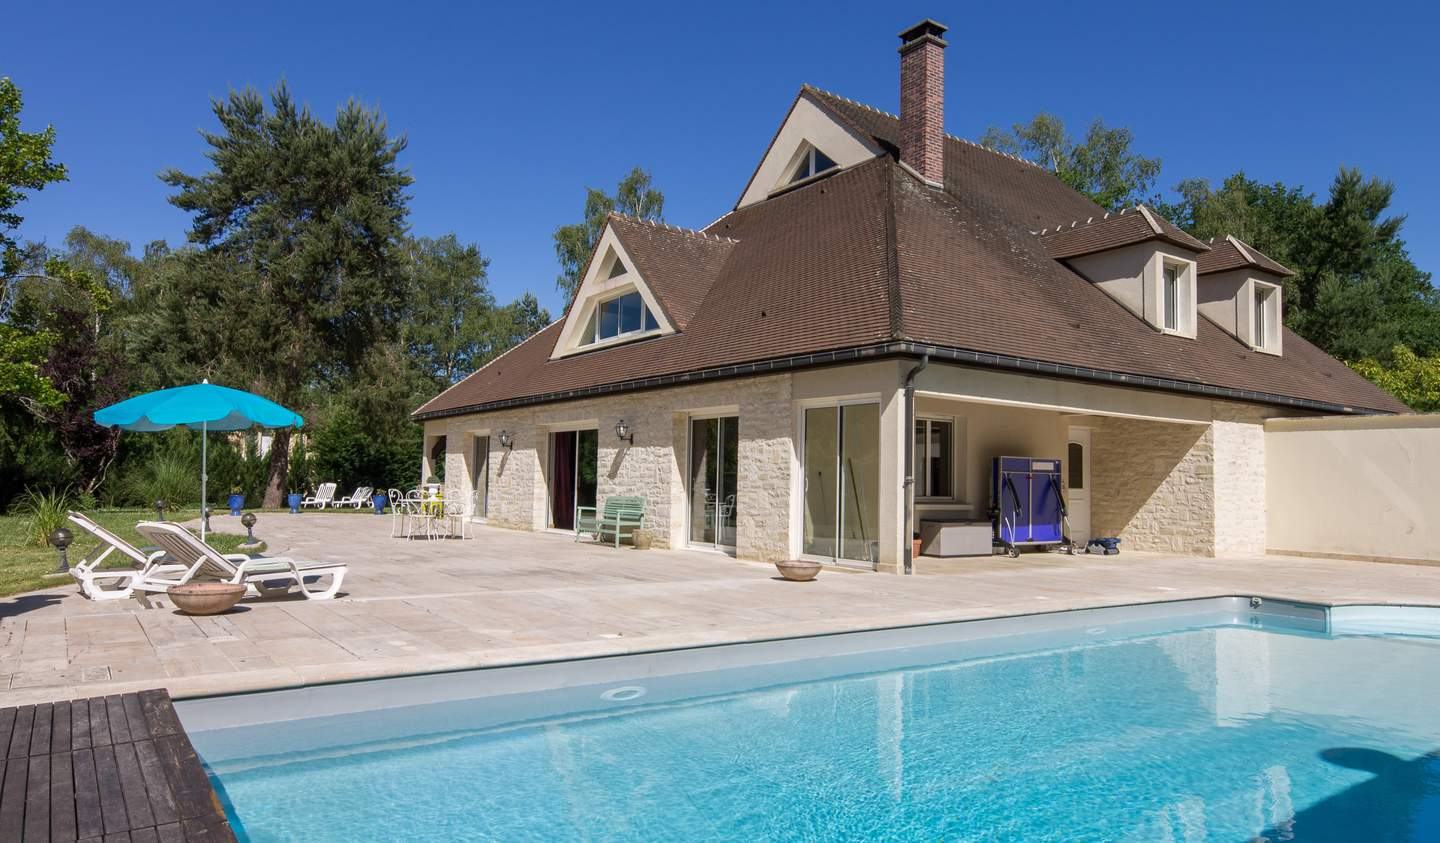 Villa with pool and garden Clairefontaine-en-Yvelines